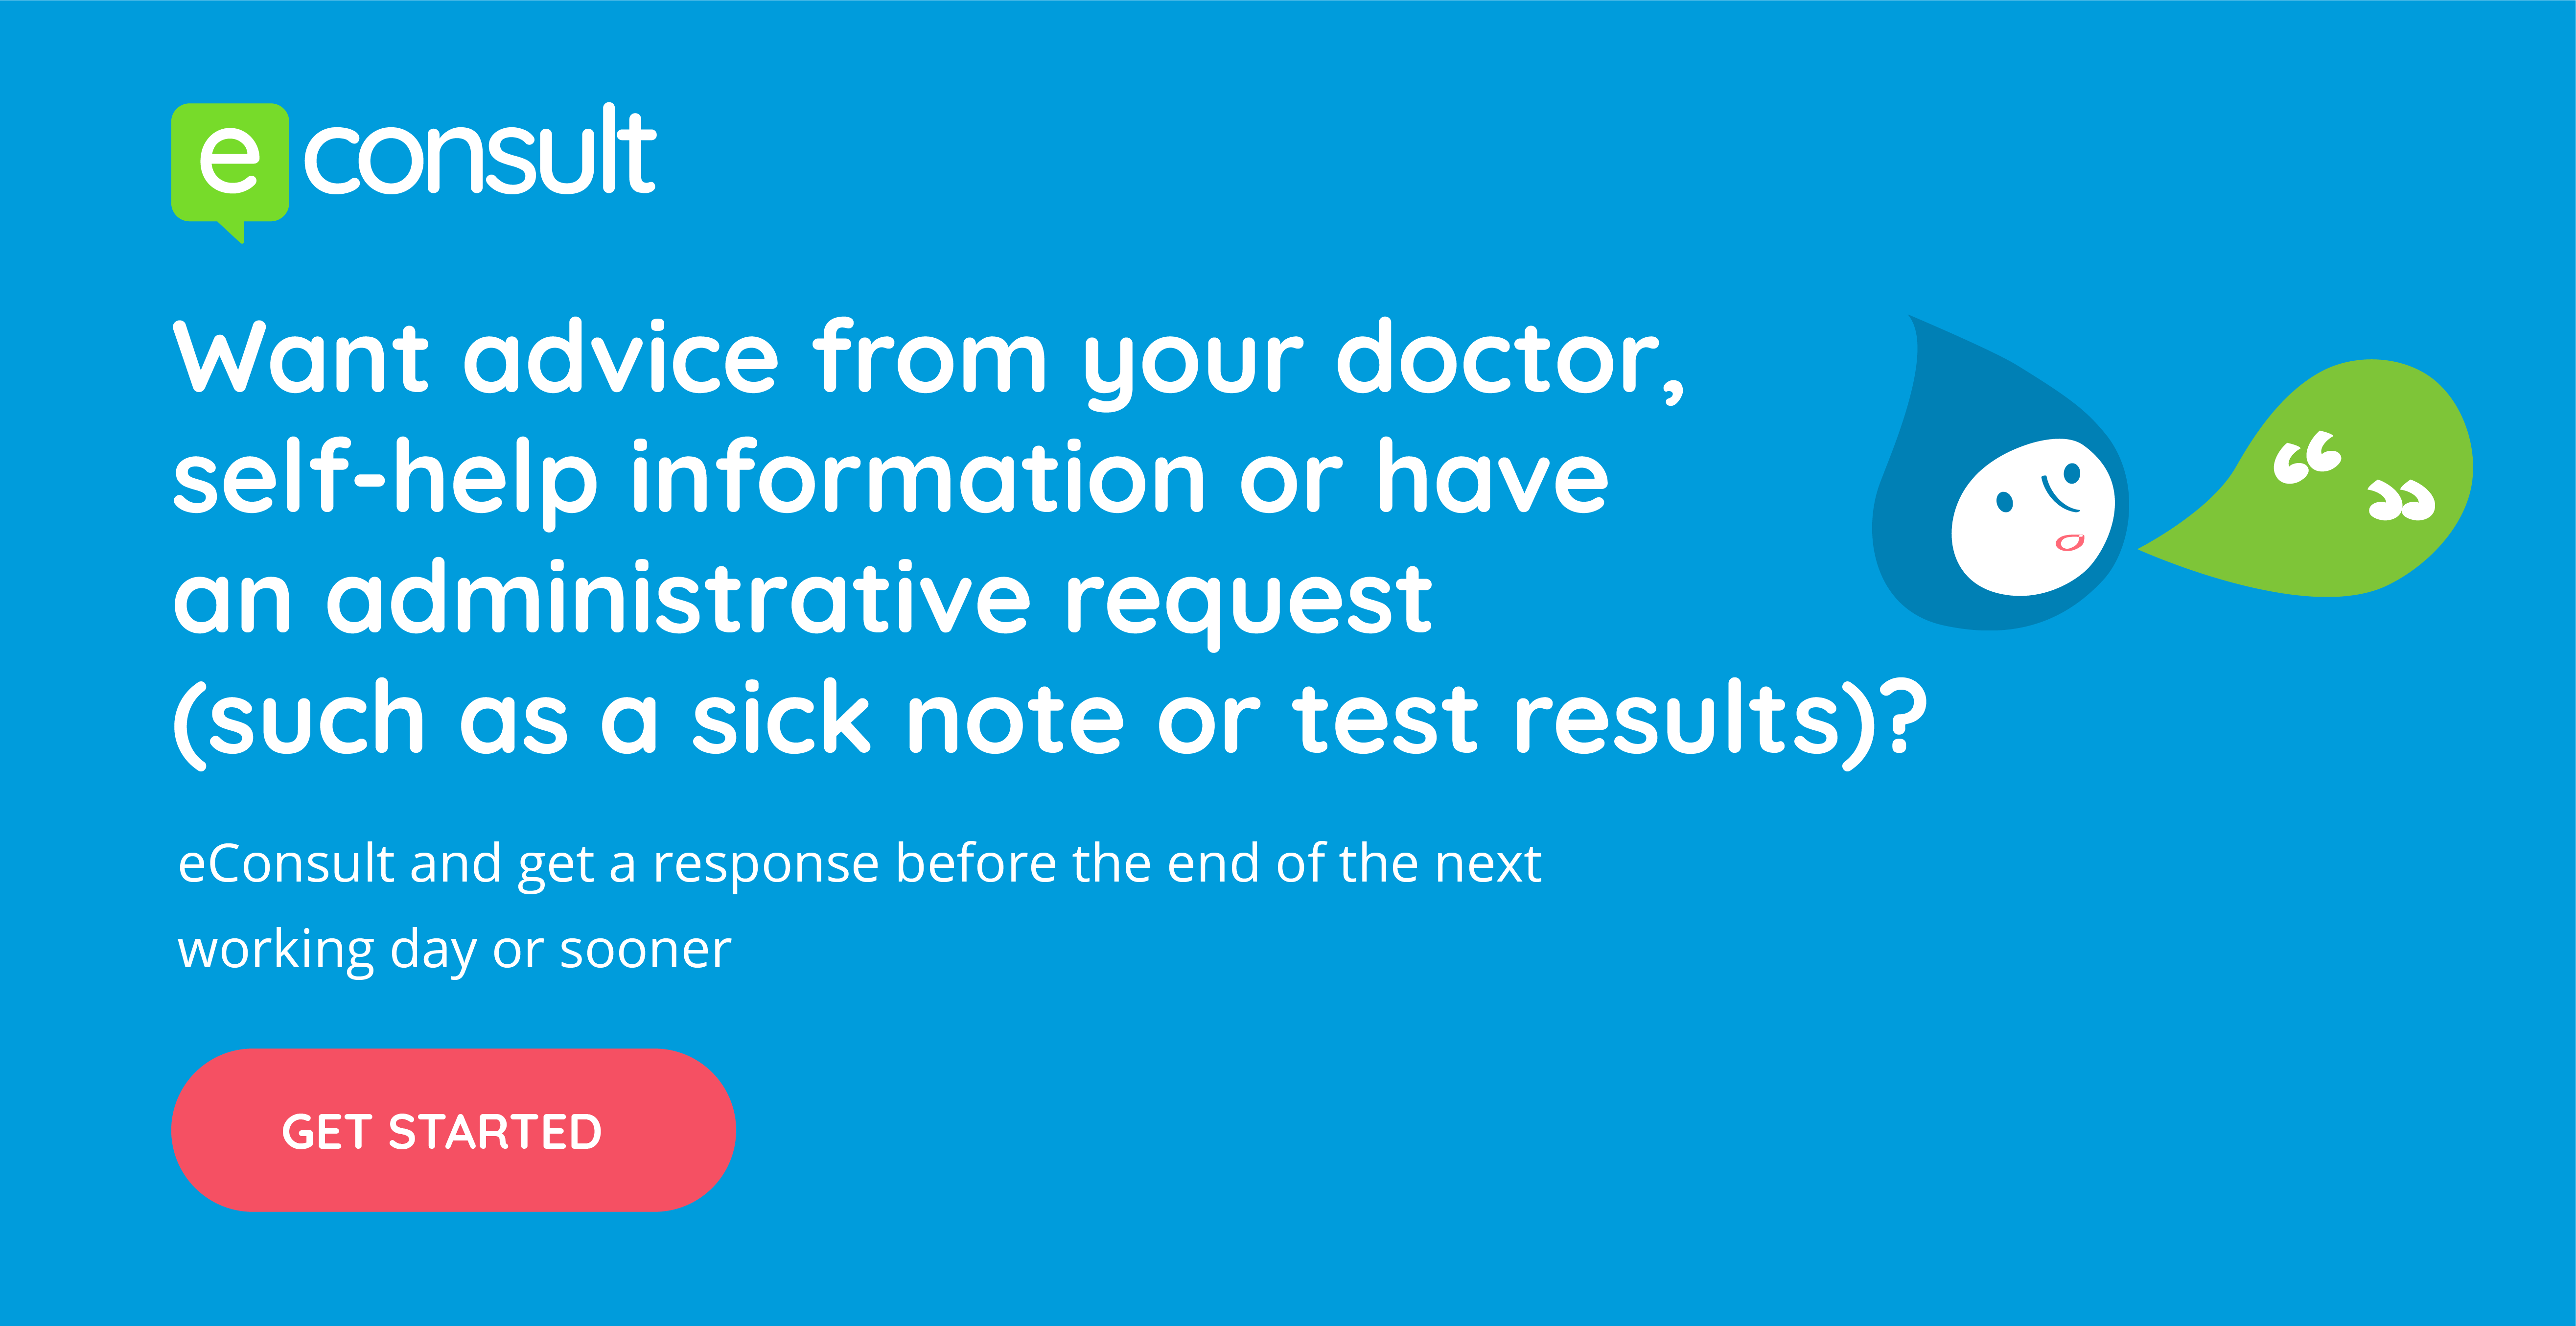 eConsult.  Want advice from your doctor, self-help information or have an administrative request (such as a sick note or test results)?  eConsult and get a response before the end of the next working day or sooner.  Get started